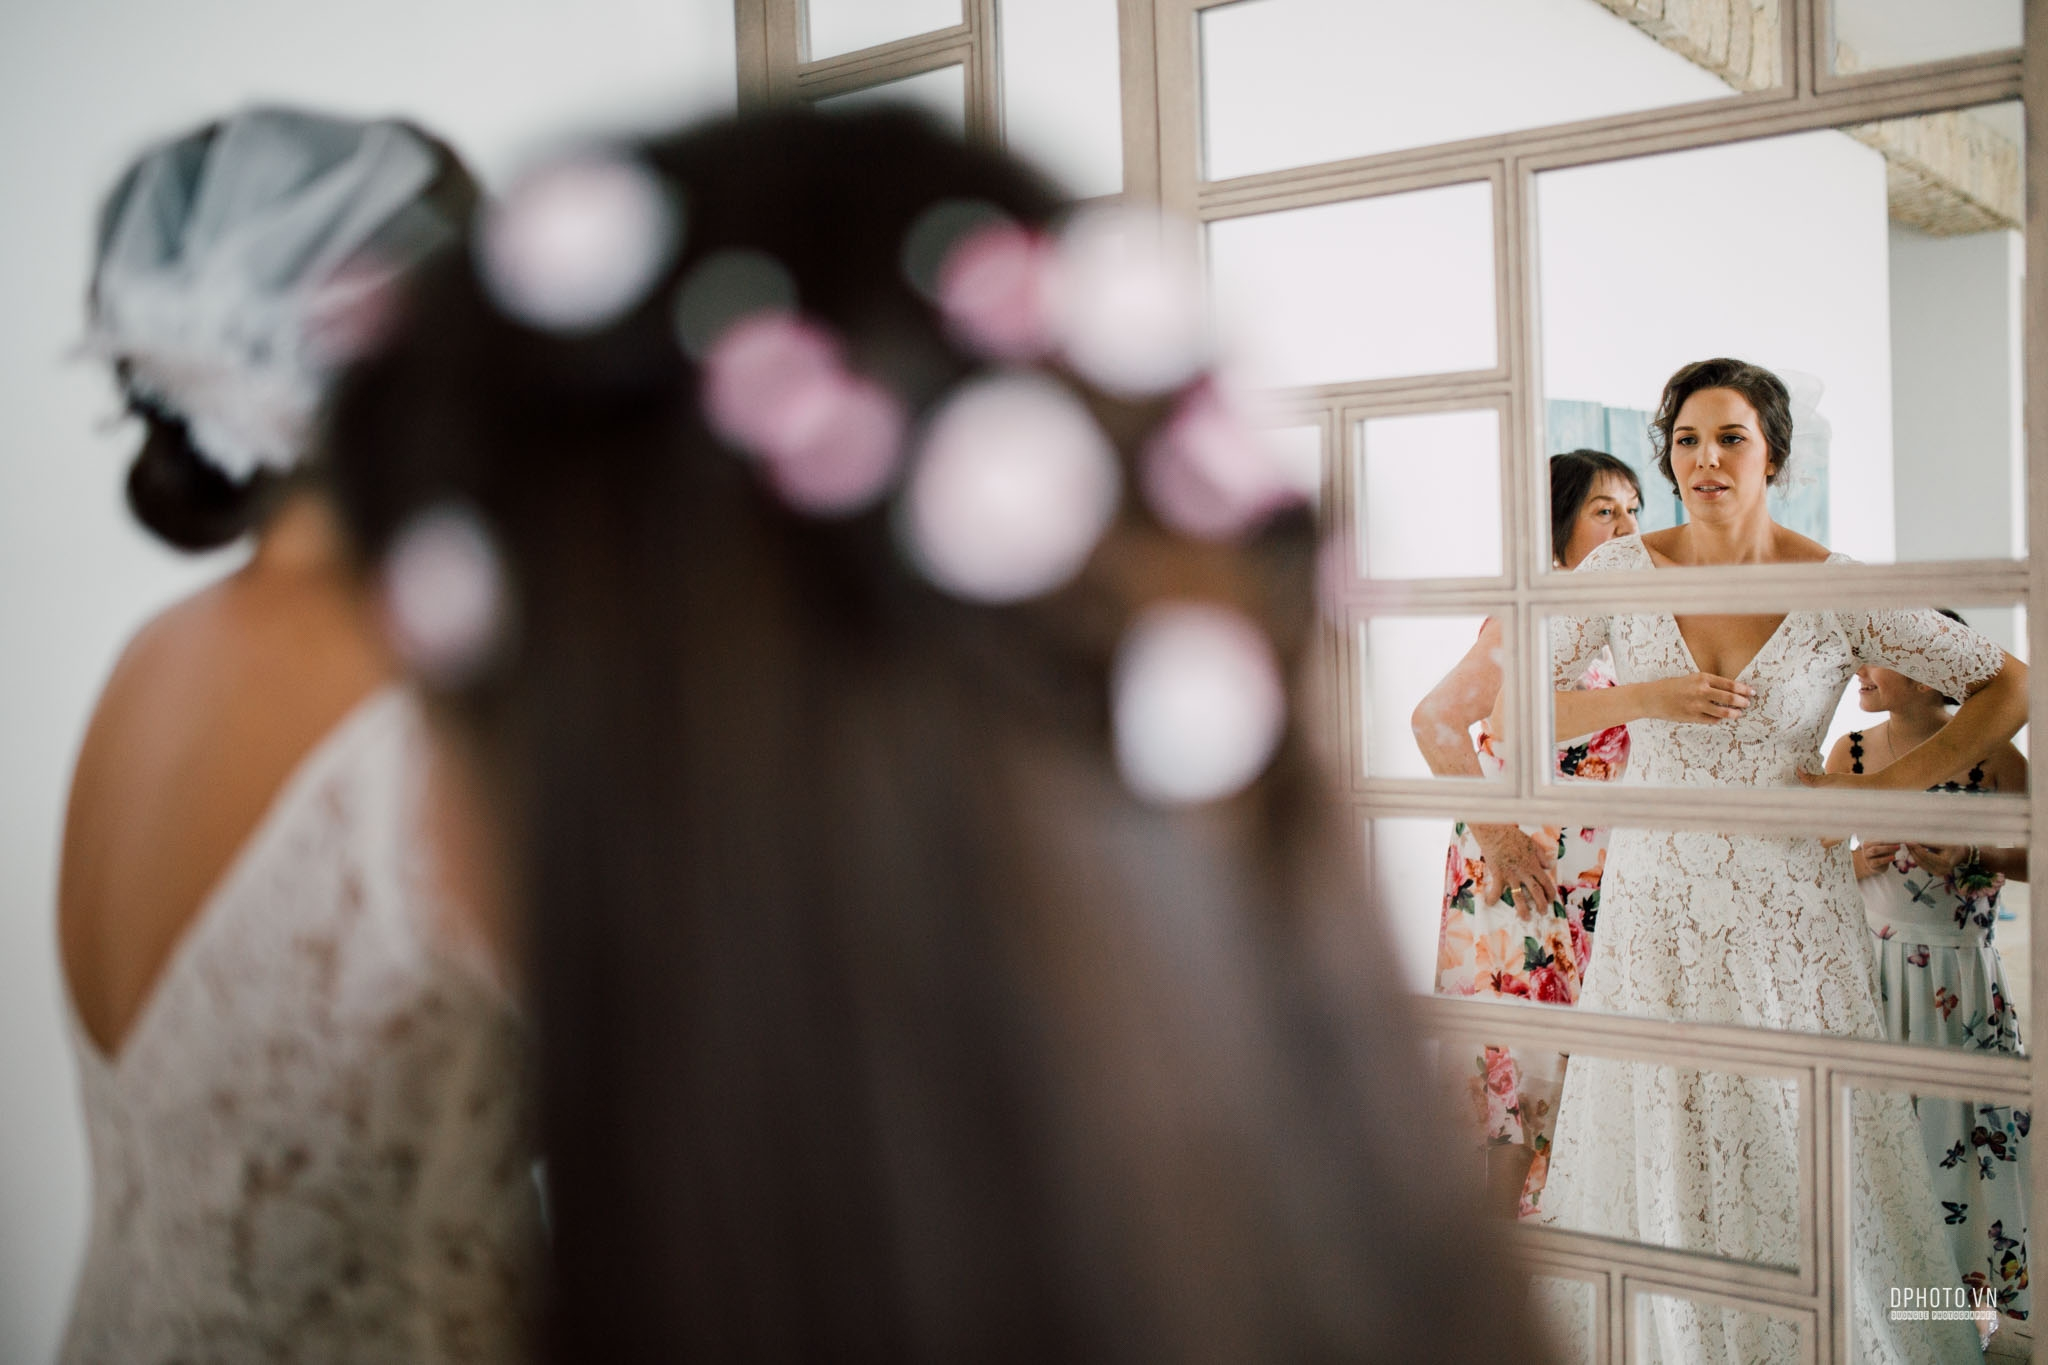 nha_trang_wedding_photographer_93